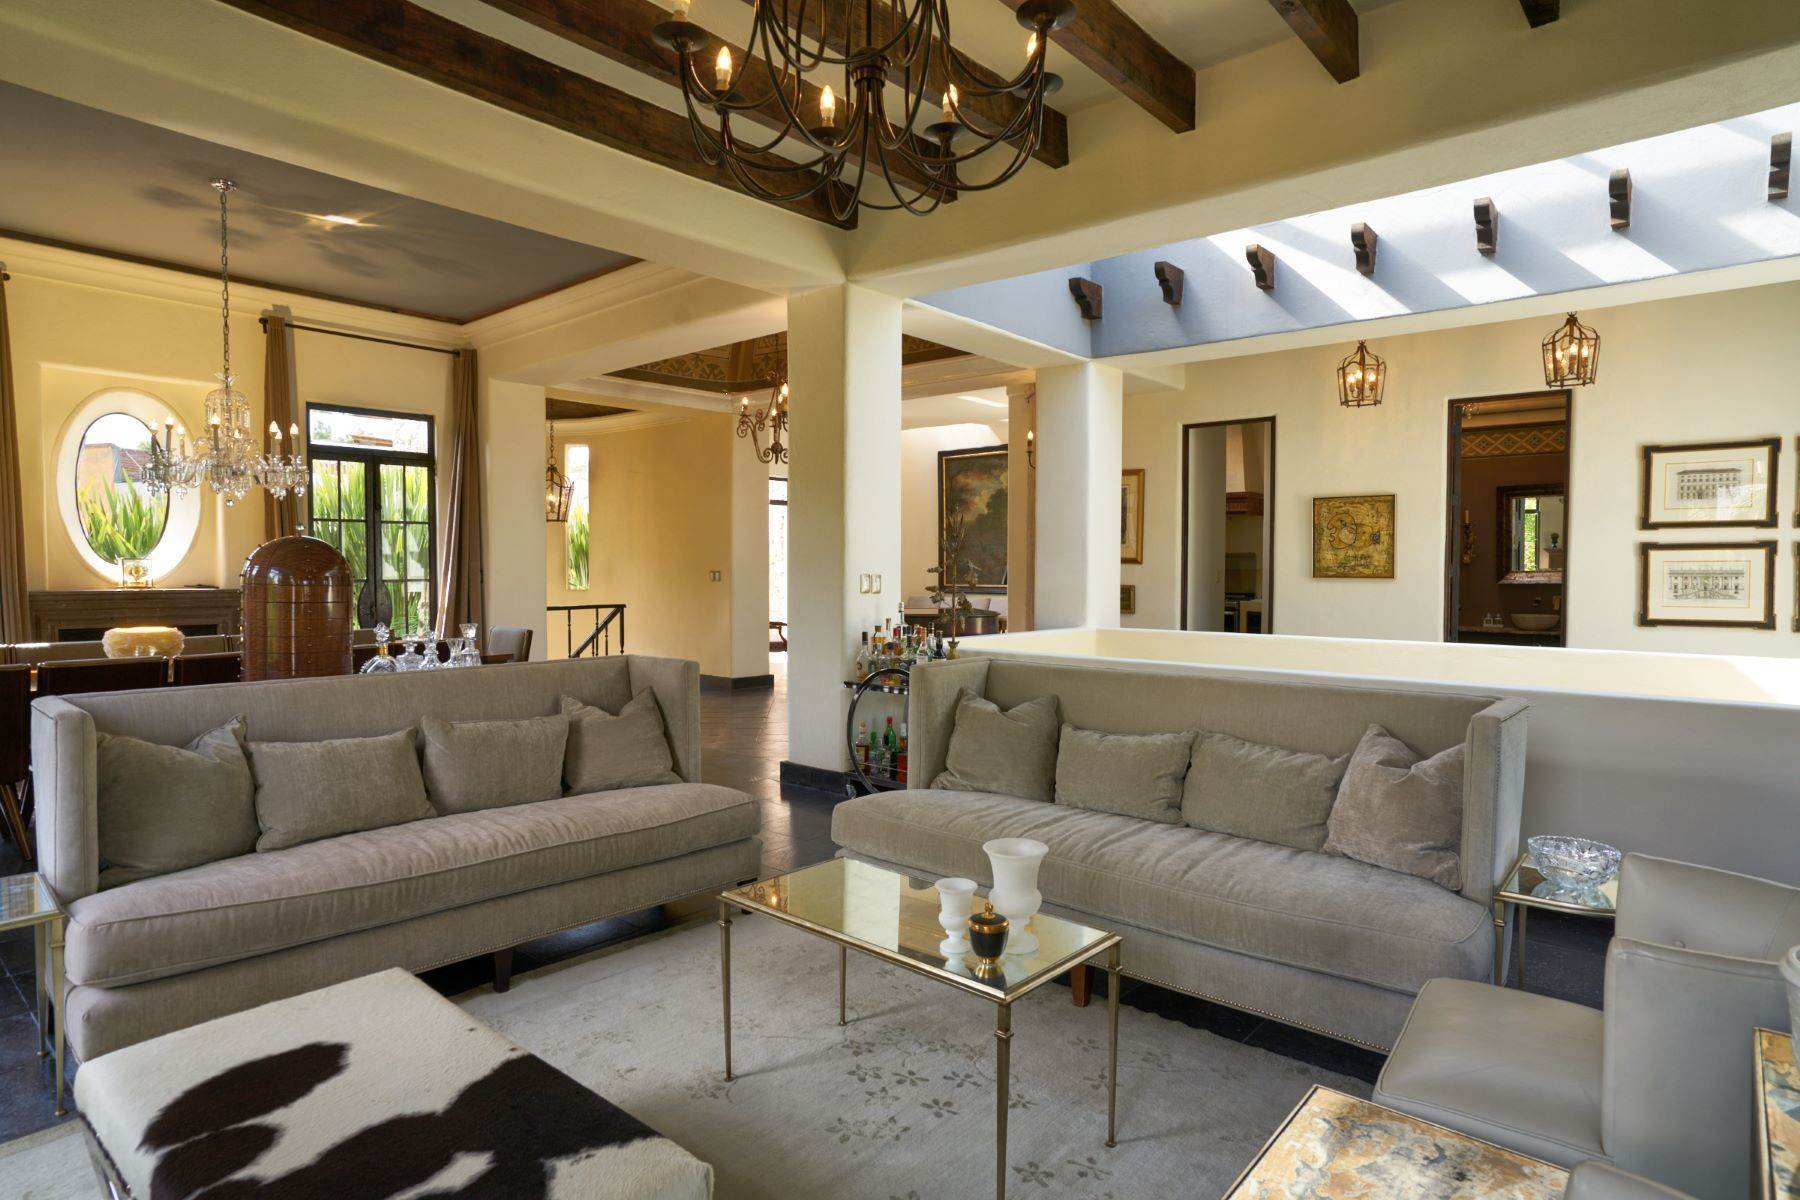 4. Single Family Homes for Sale at Casa Shangri-La Moras 3 B San Miguel De Allende, Guanajuato 37700 Mexico